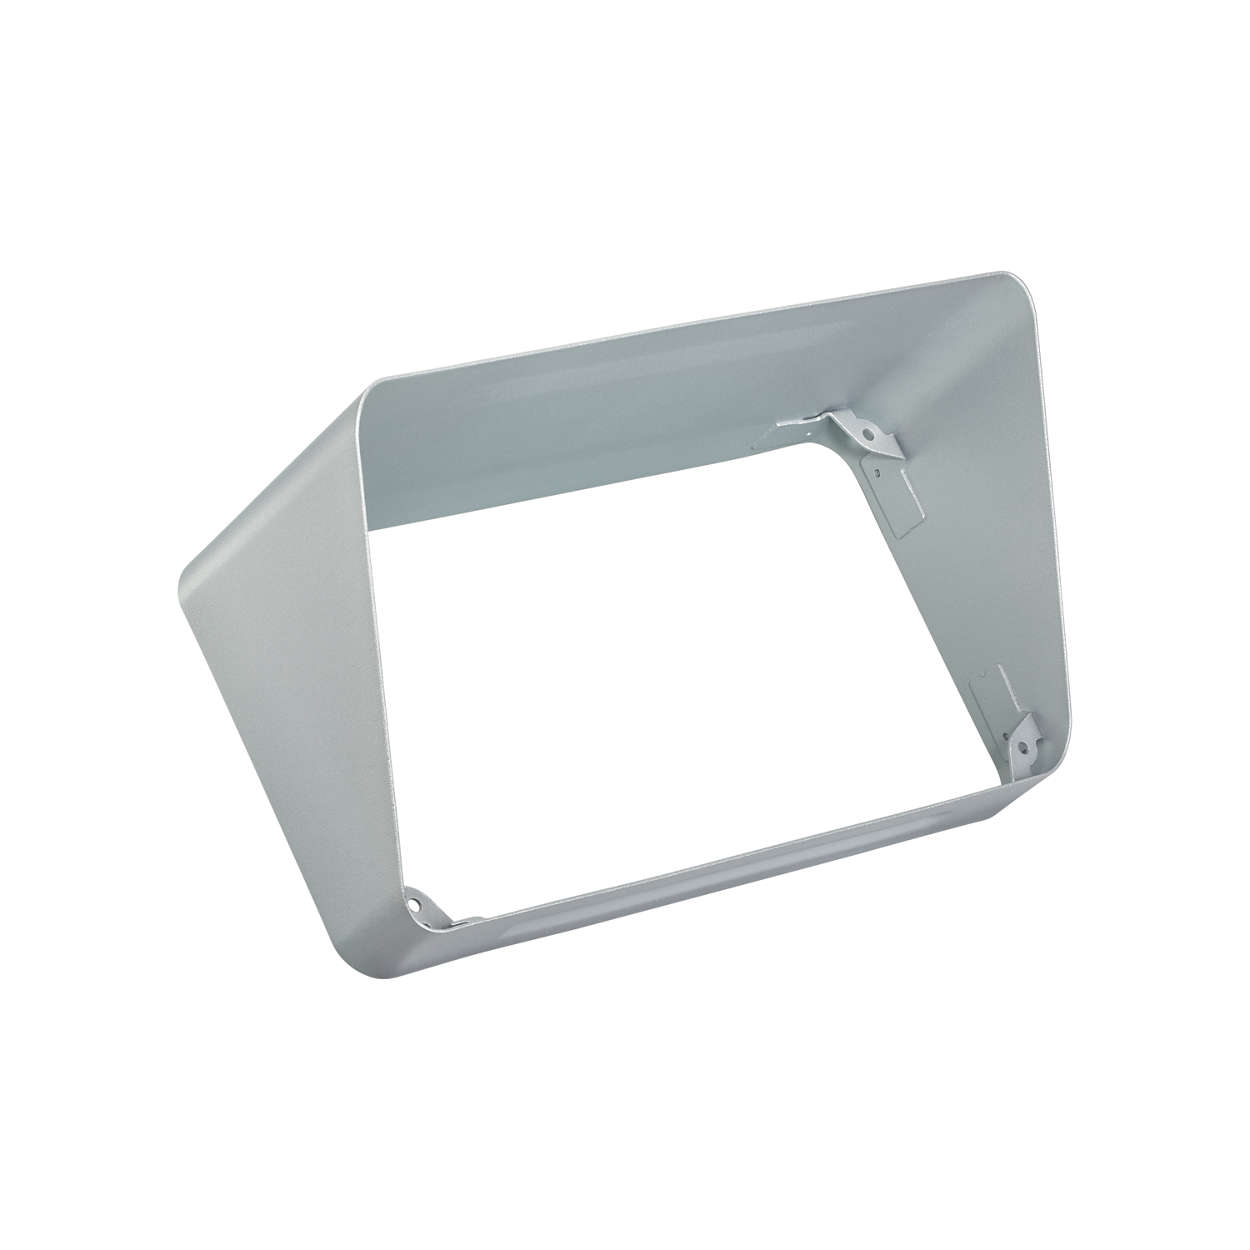 Customizable and durable accessory designed for all Blast gen4 fixtures